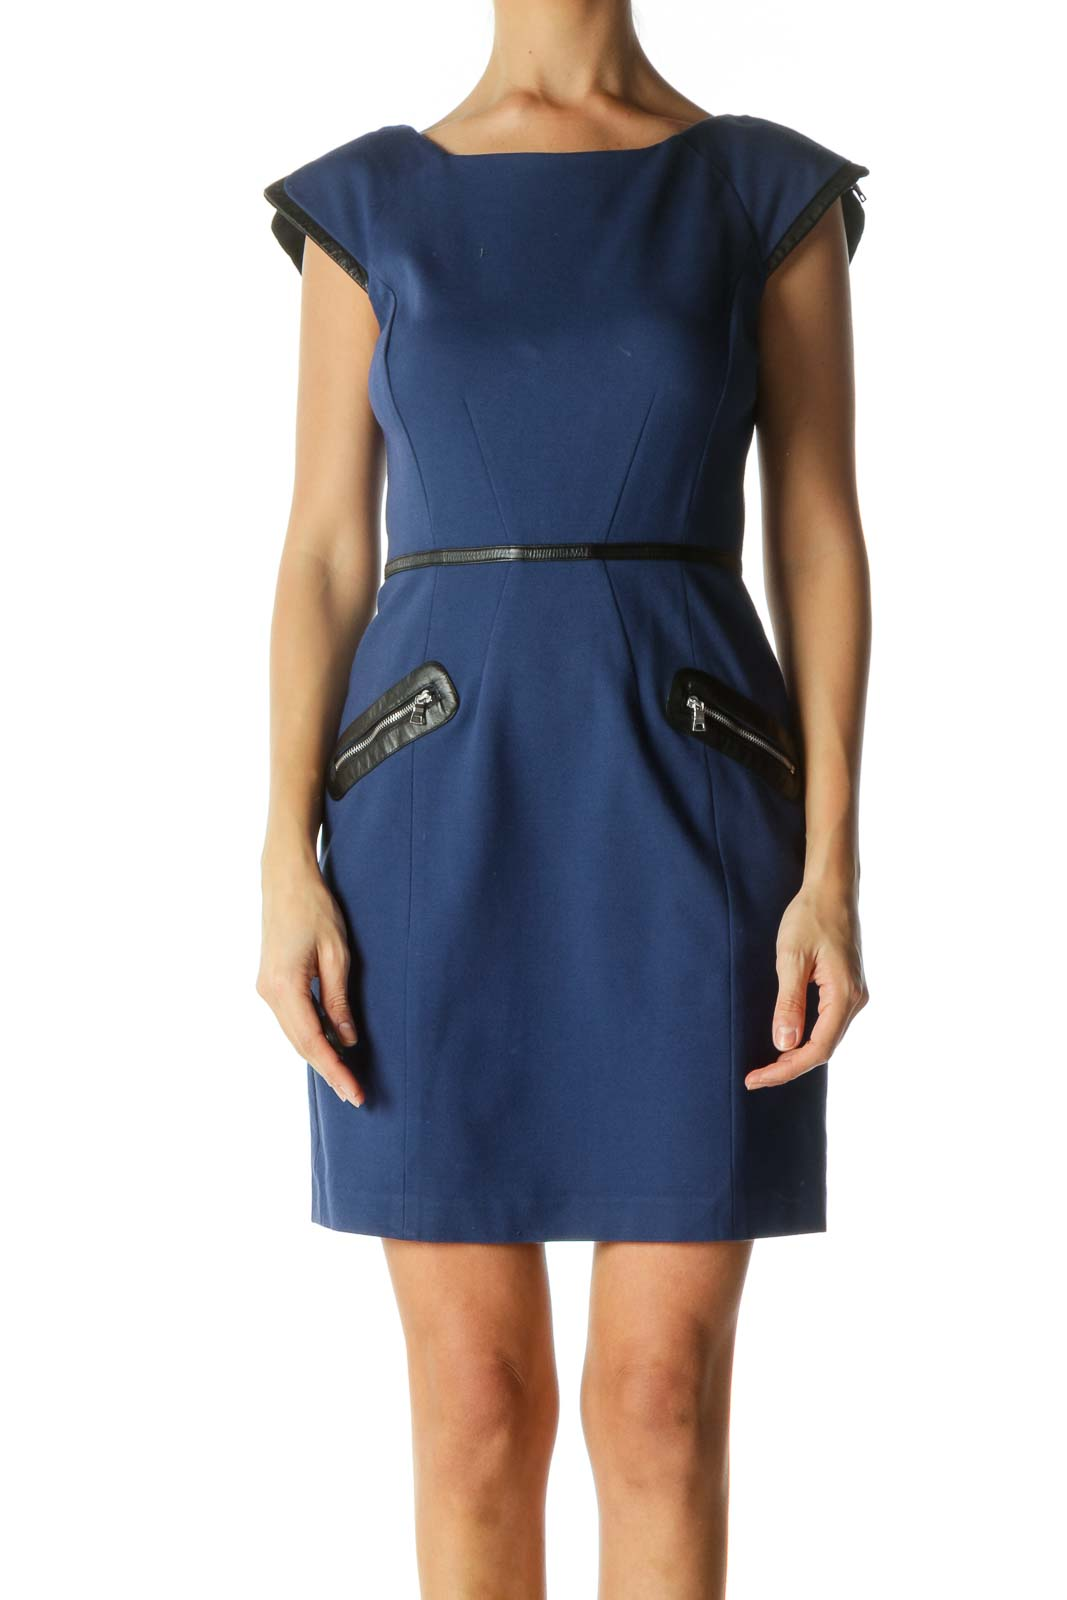 Blue and Black Zippered Back Sheath Dress Front